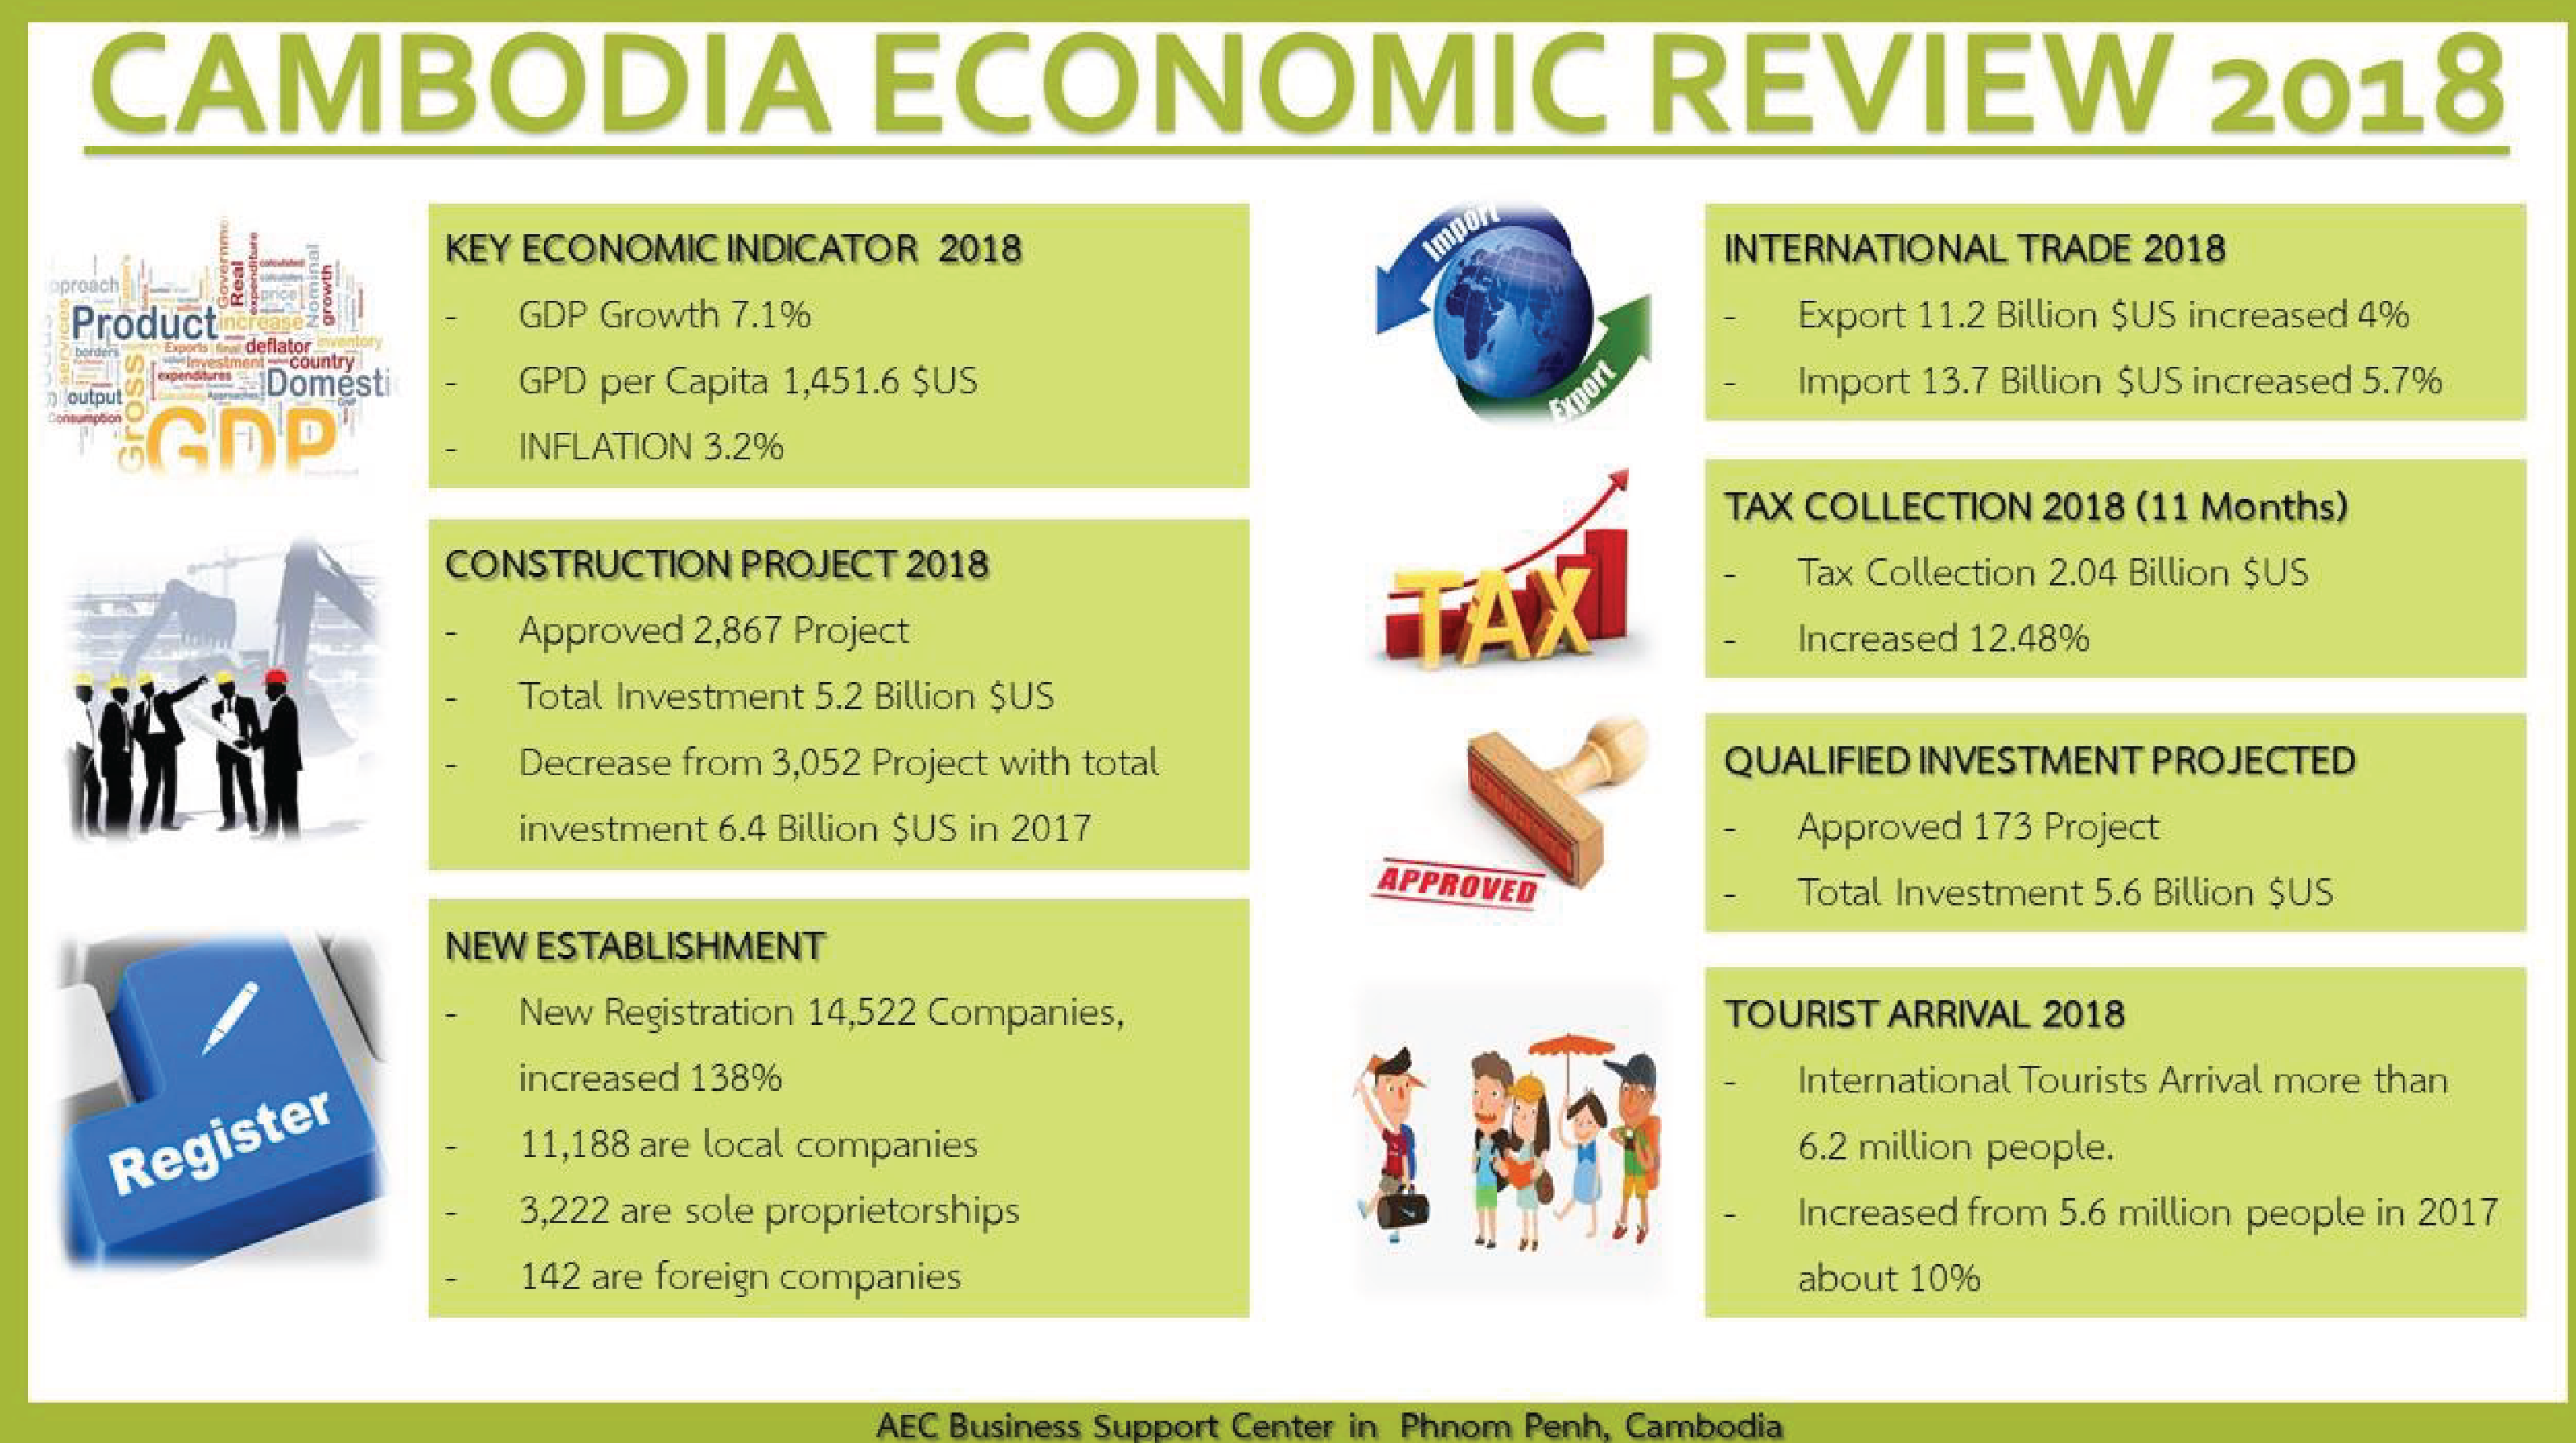 Cambodia Economic Review 2018